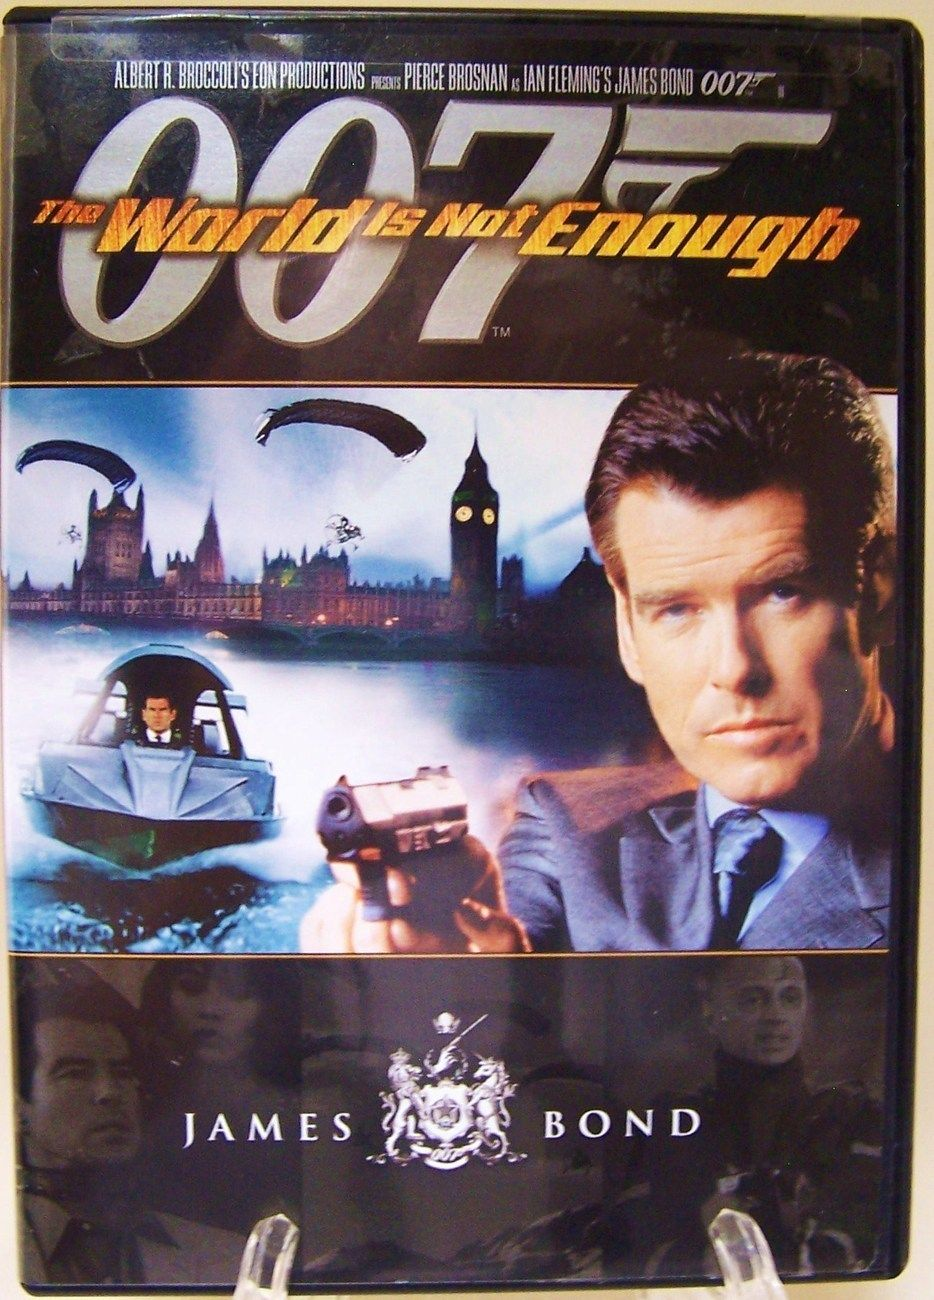 The World Is Not Enough James Bond 007 Dvd Bond Movies James